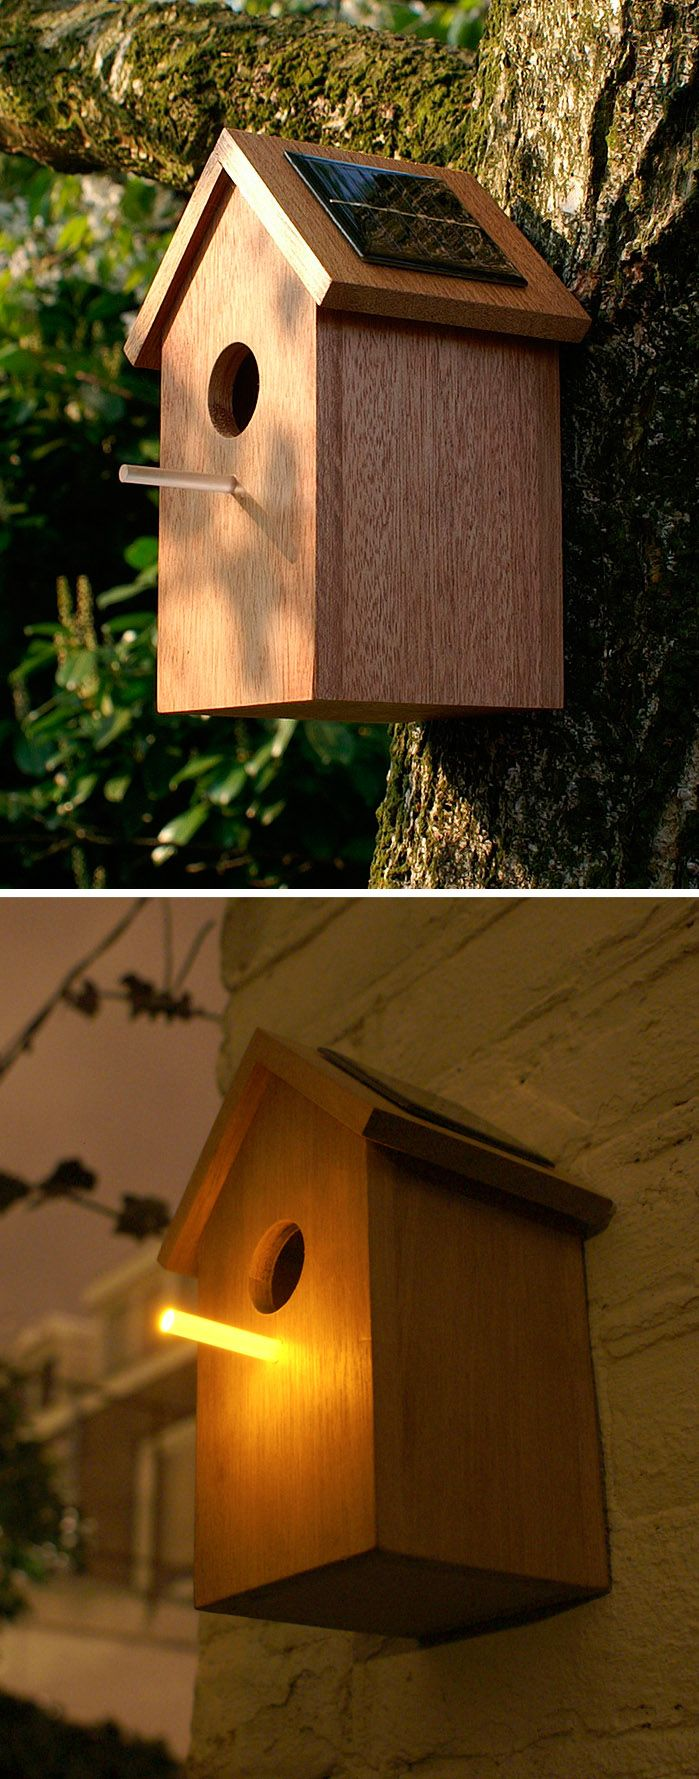 Solar birdhouse - During the day sunlight feeds the solar panel, charging a small battery inside. At twilight the transparent stick will light up and cast a tiny light, attracting bugs for an easy snack.